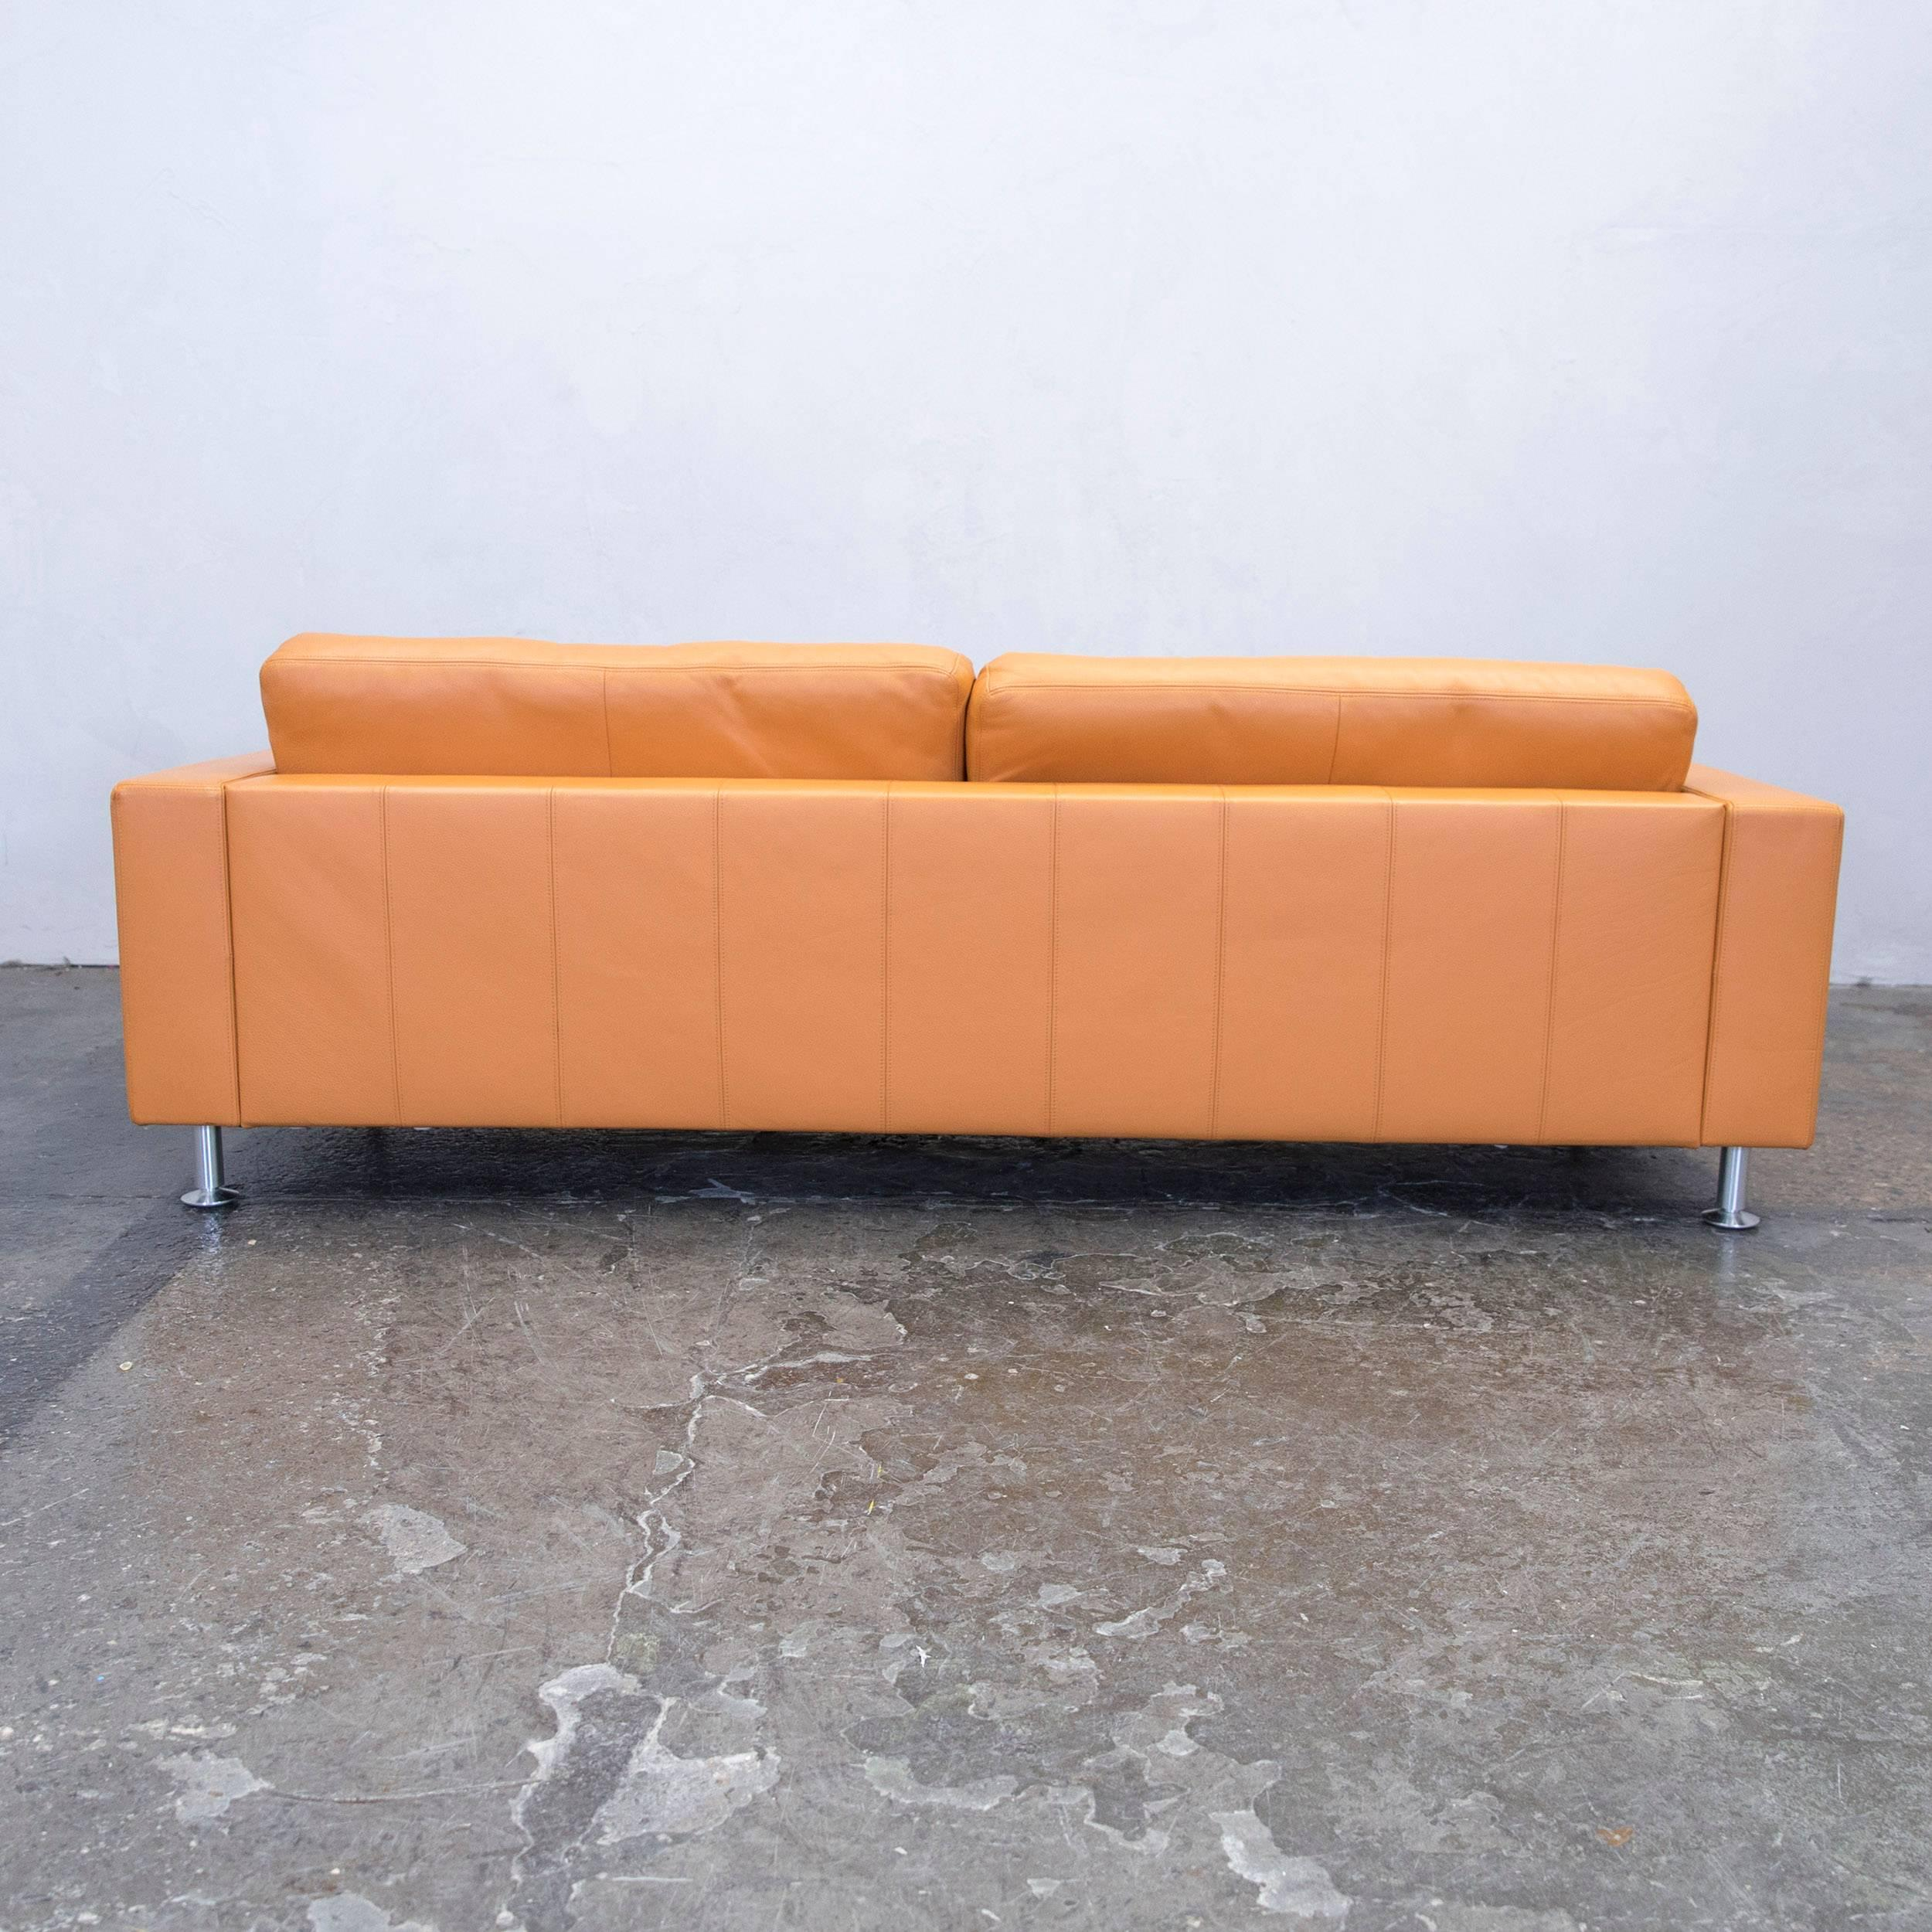 Designer Sessel Orange Rolf Benz Basix Designer Sofa Orange Three Seat Couch Modern